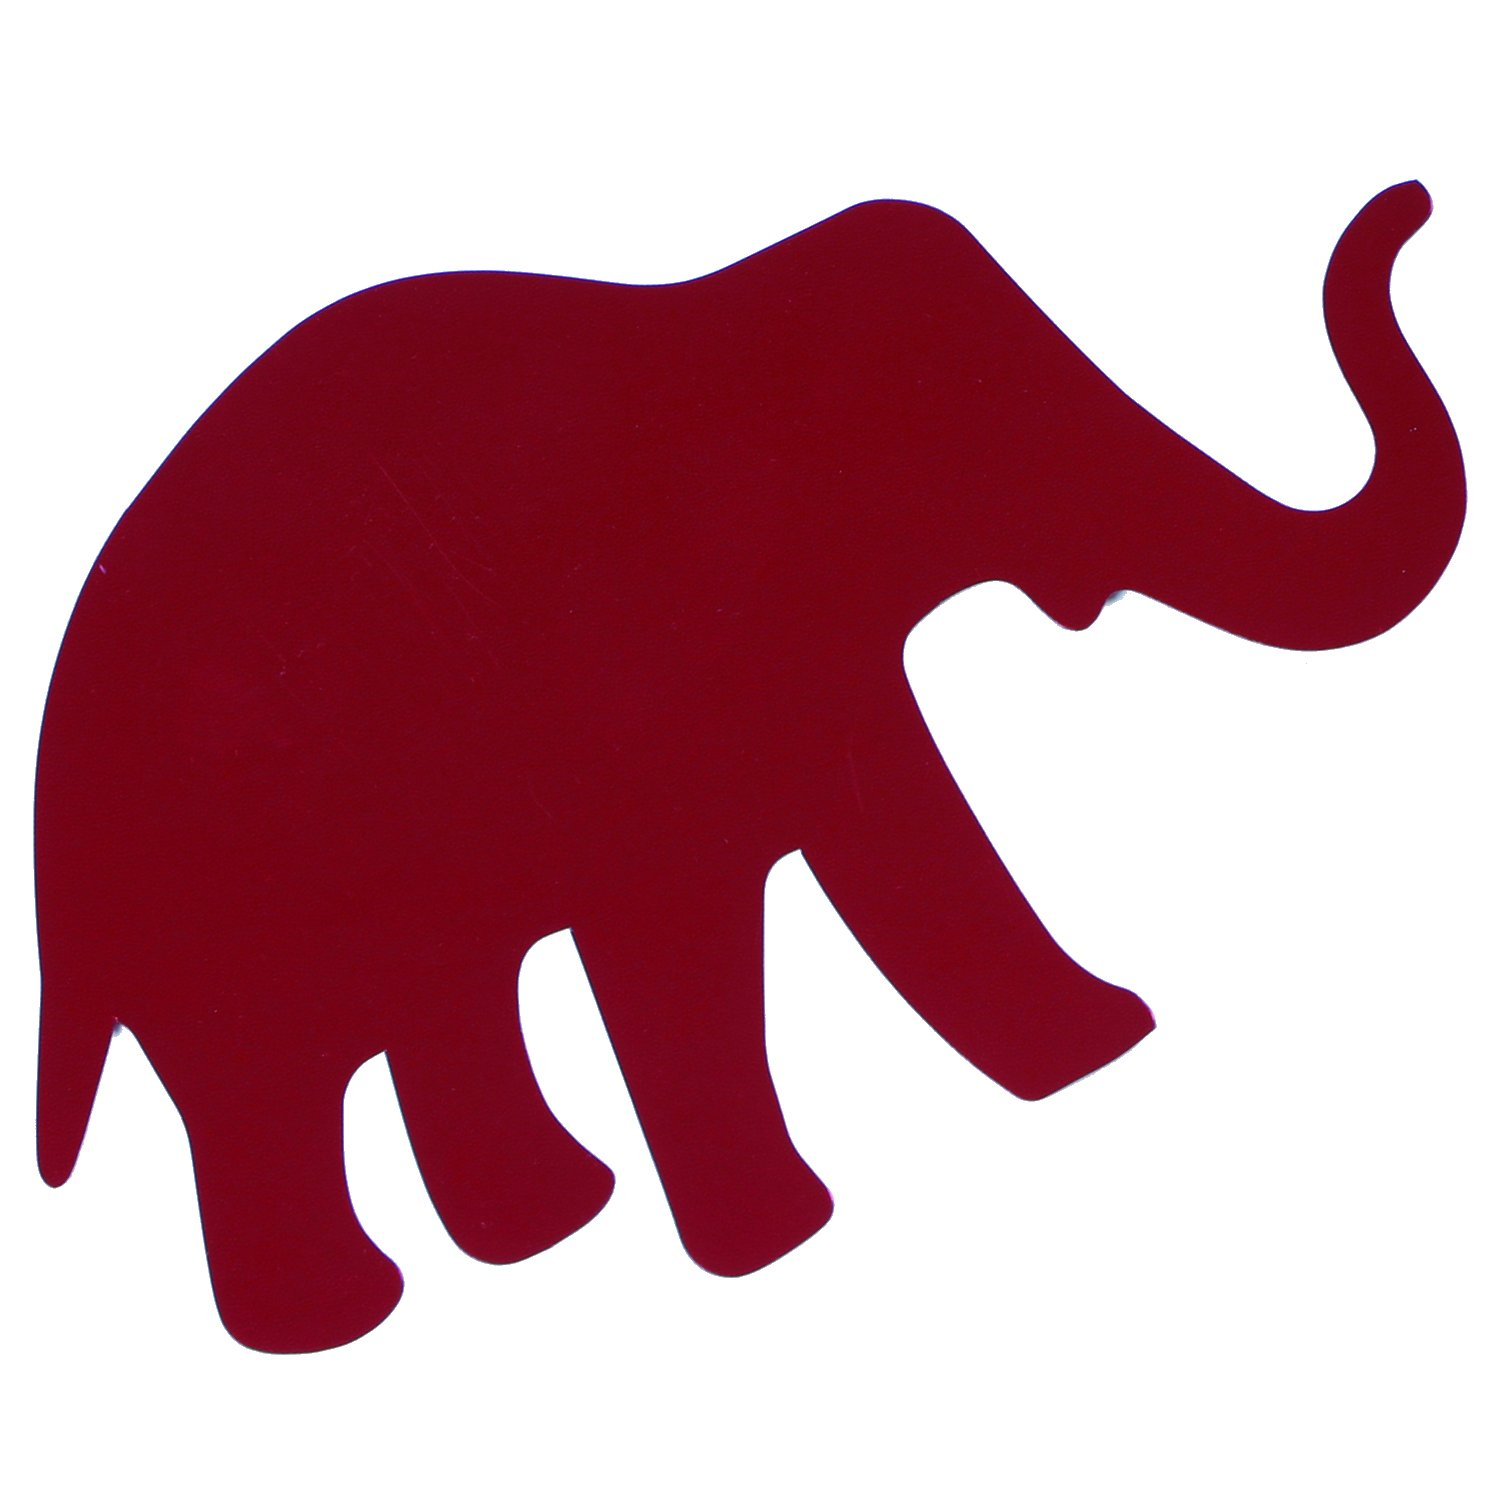 Metallic Shape - ELEPHANT 5' size (15 Pcs) or 2.5' size (25 Pcs) in 12 Metallic Colors (Also Available in Paper) #6243